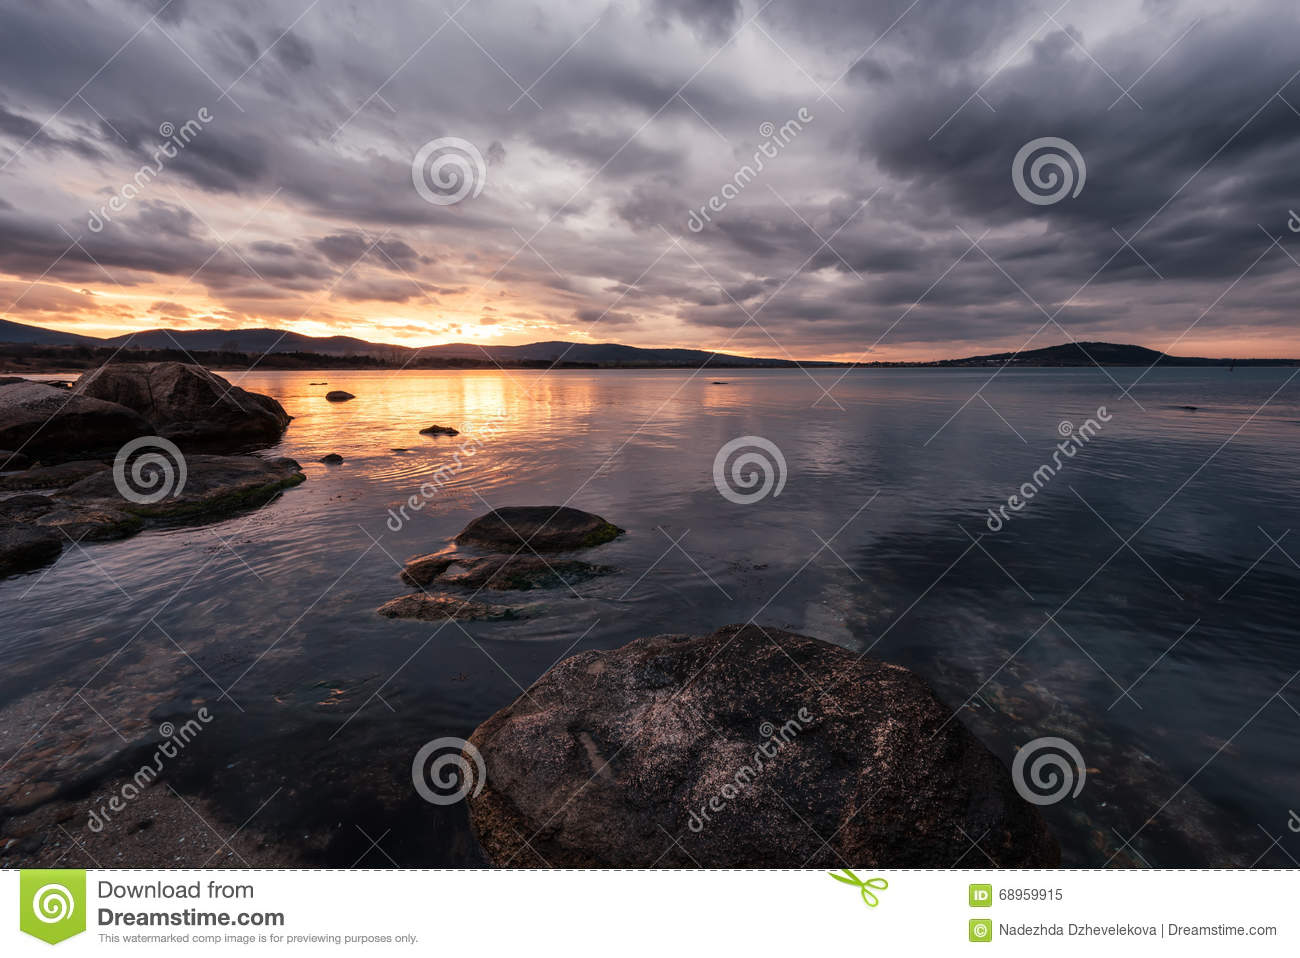 Chernomorets Bulgaria  city images : Sunset In Chernomorets, Near Burgas, Bulgaria. Stock Photo Image ...